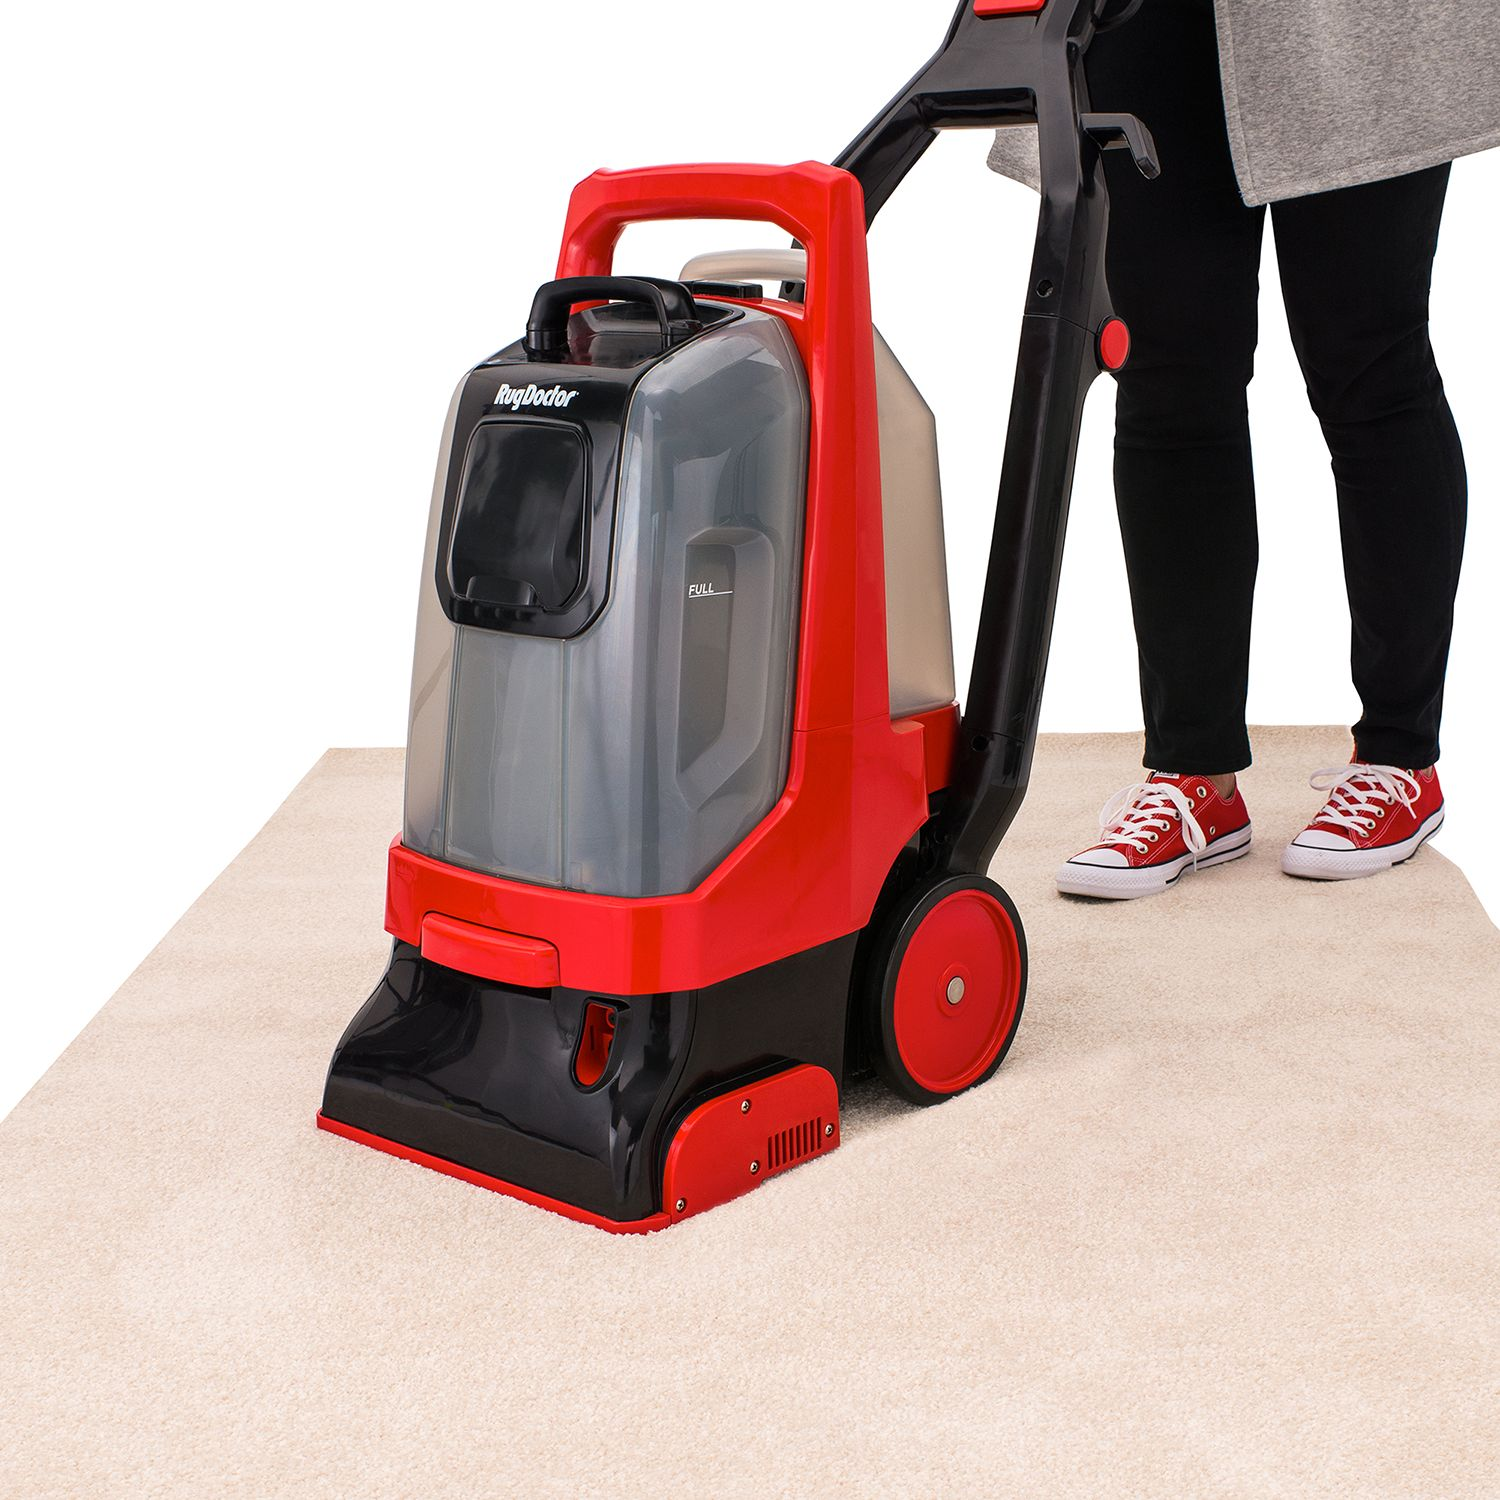 foto Rug Doctor Pro Deep Hard Floor Cleaner with Hose and Extender for Pro Deep Carpet Cleaner